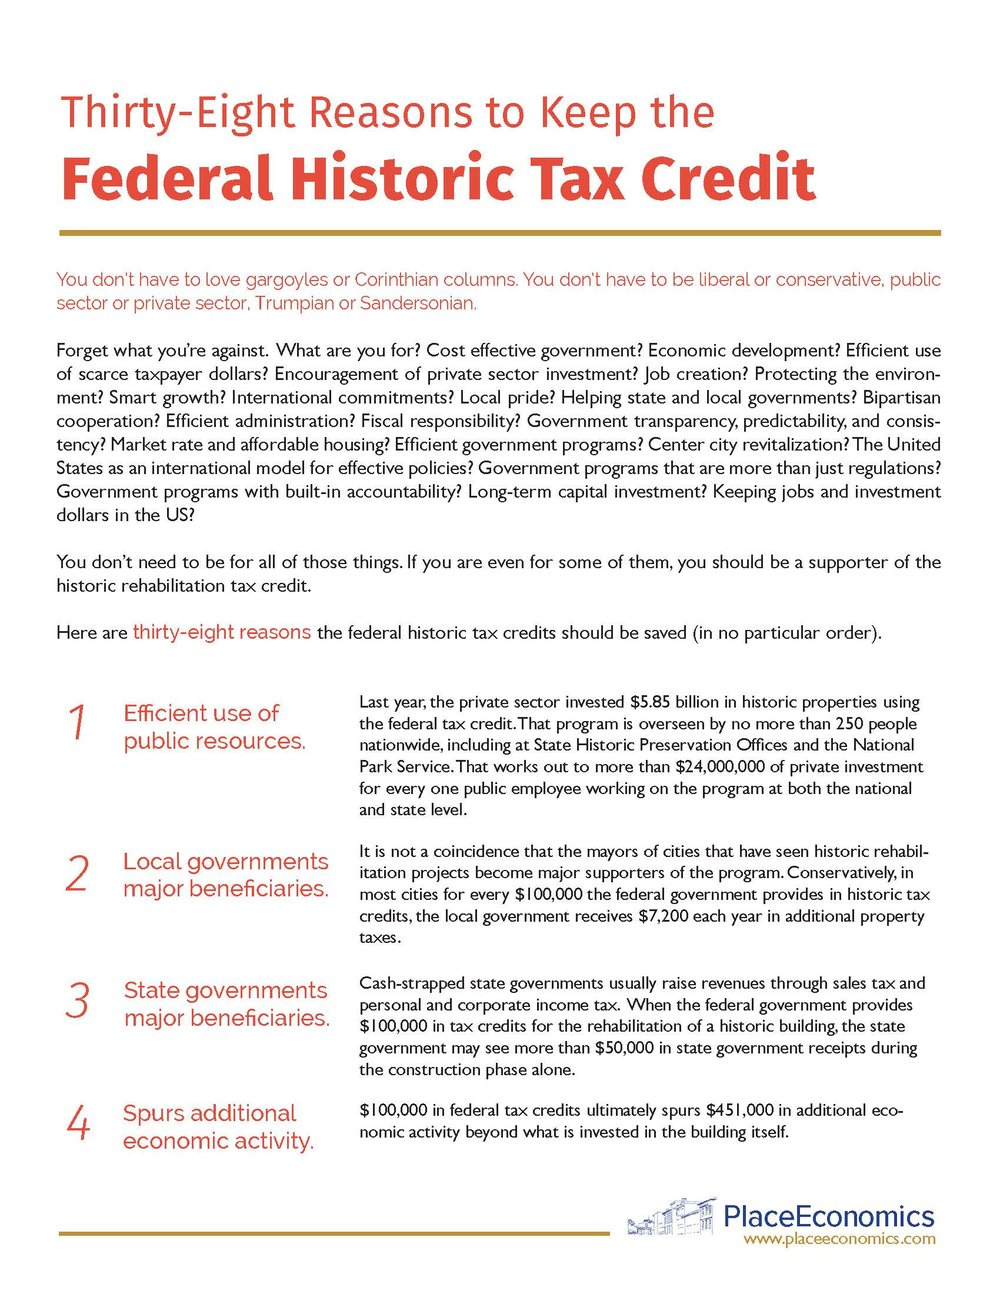 38-Reasons-to-Keep-the-Federal-Historic-Tax-Credit-V5_Page_1.jpg